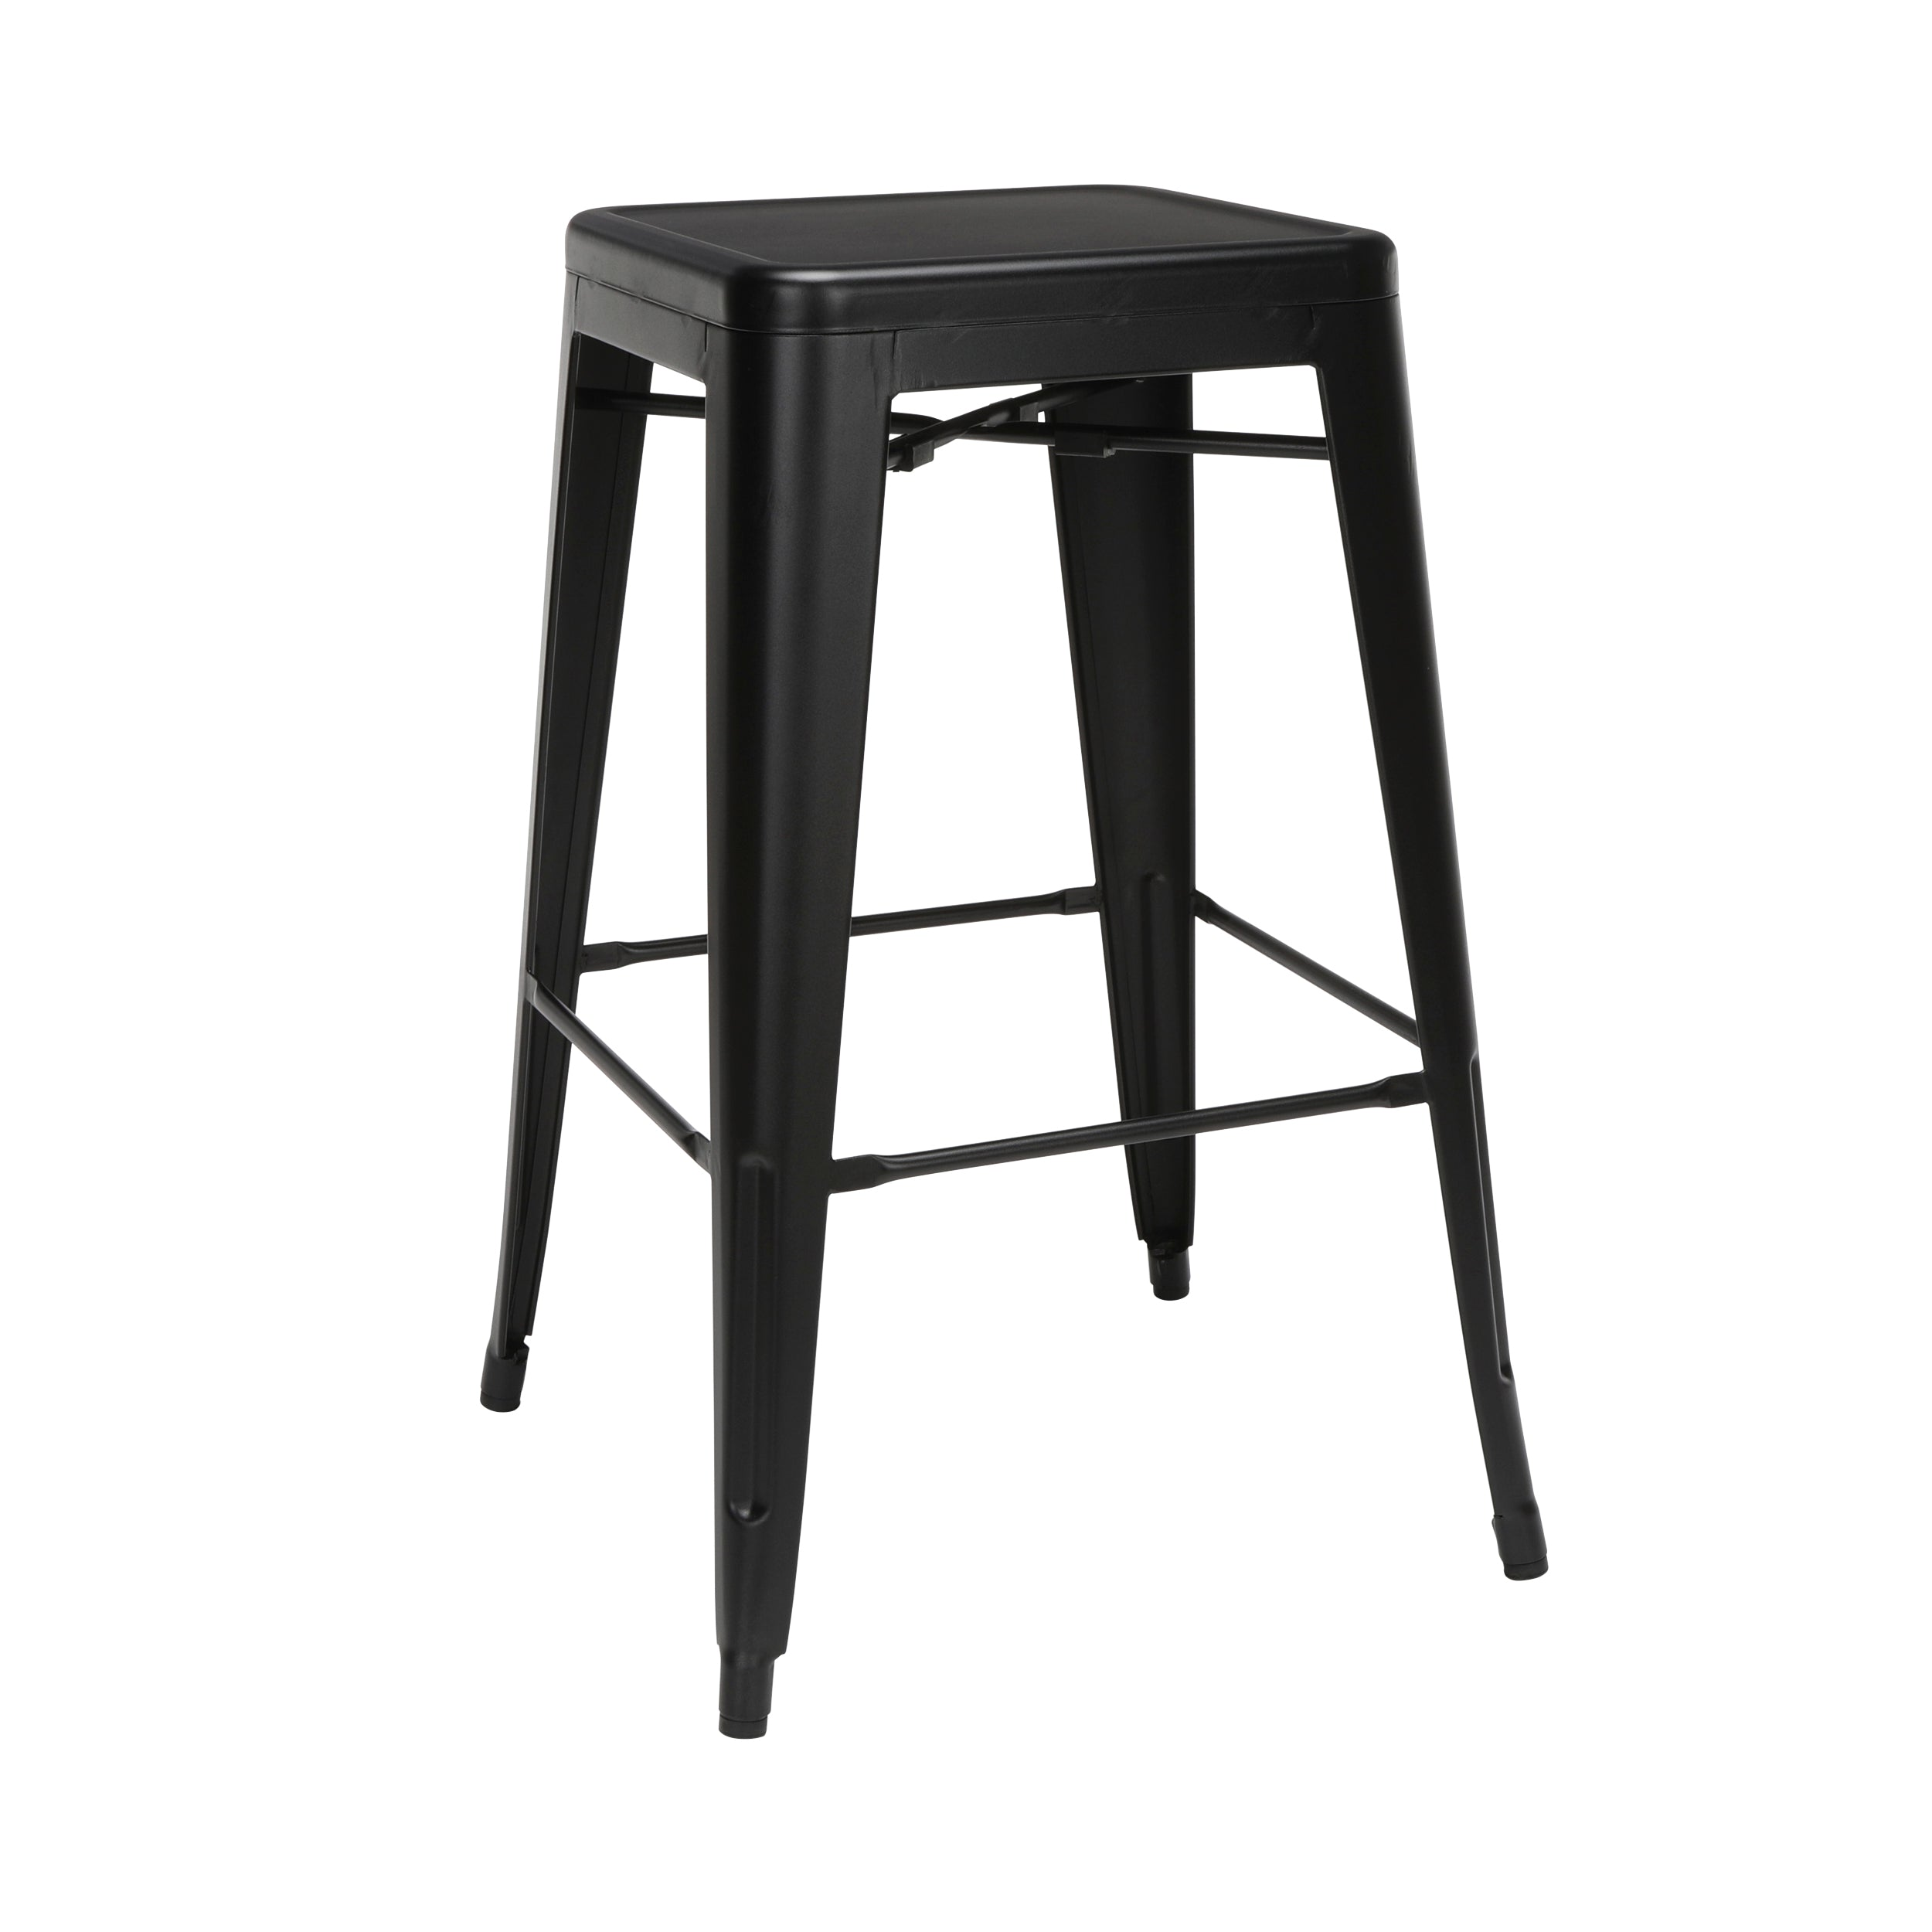 "30"" Backless Bar Height Metal Stools, Galvanized Steel Bar Stools"